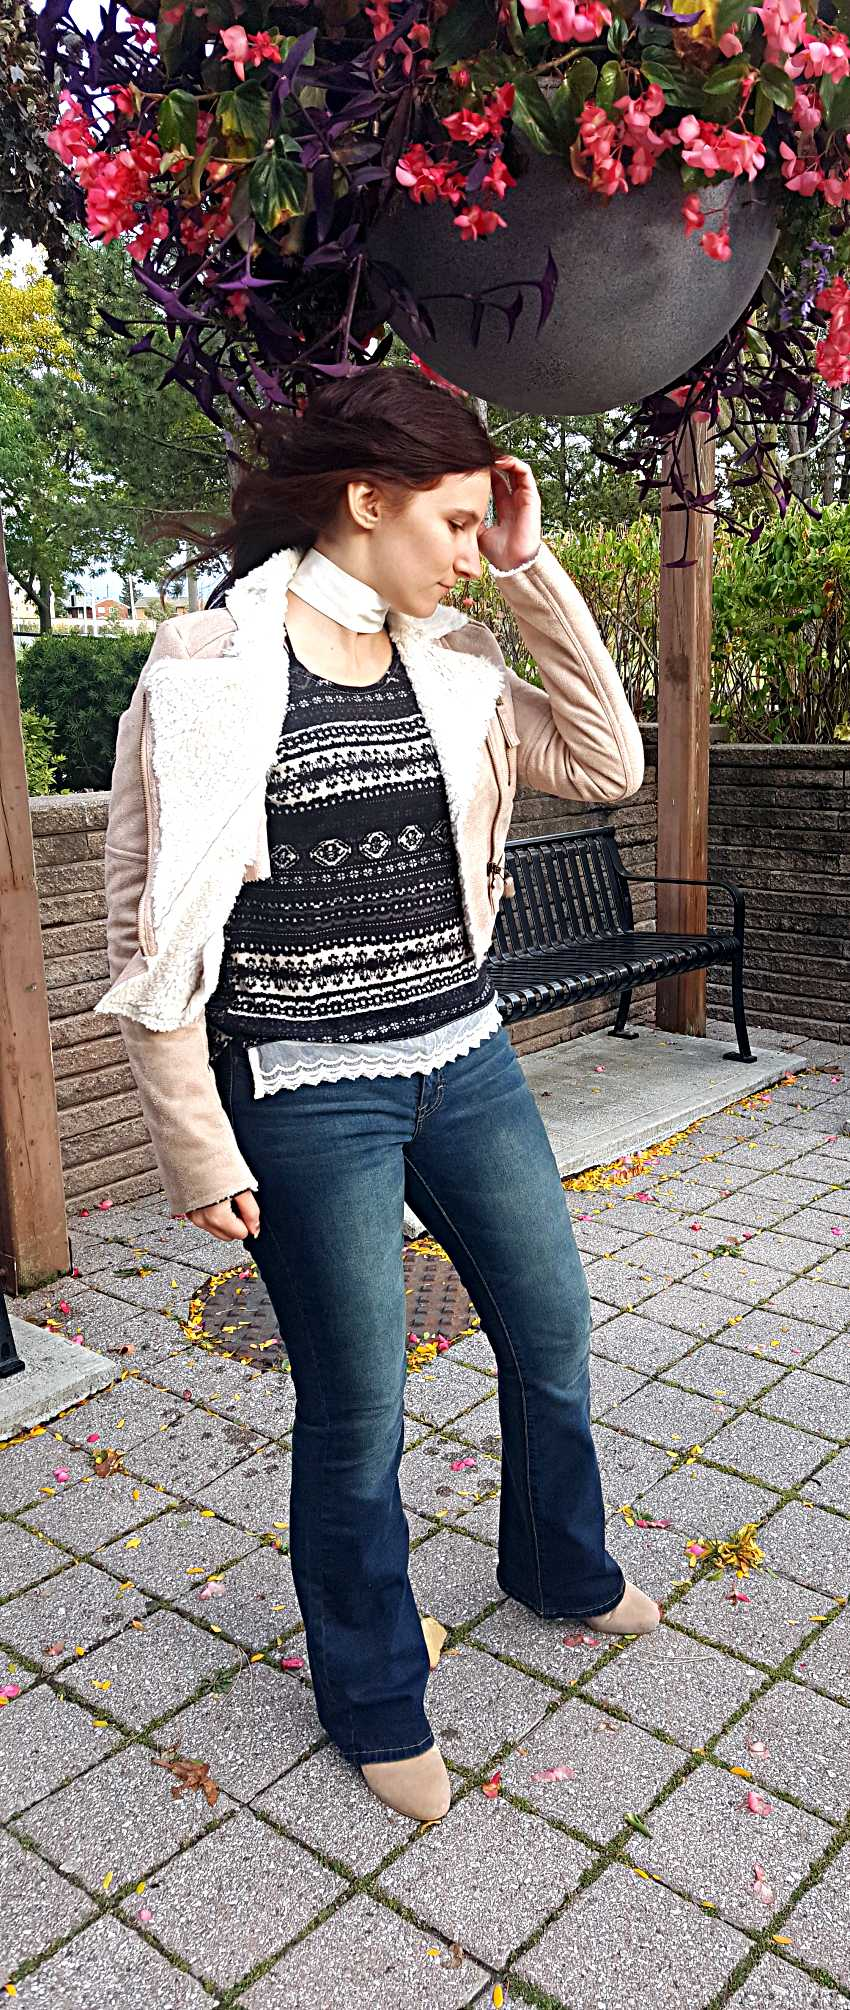 Polar Bear Style Lace Top Tan Shearling Jacket White Leather Choker Dark Denim Suede Booties